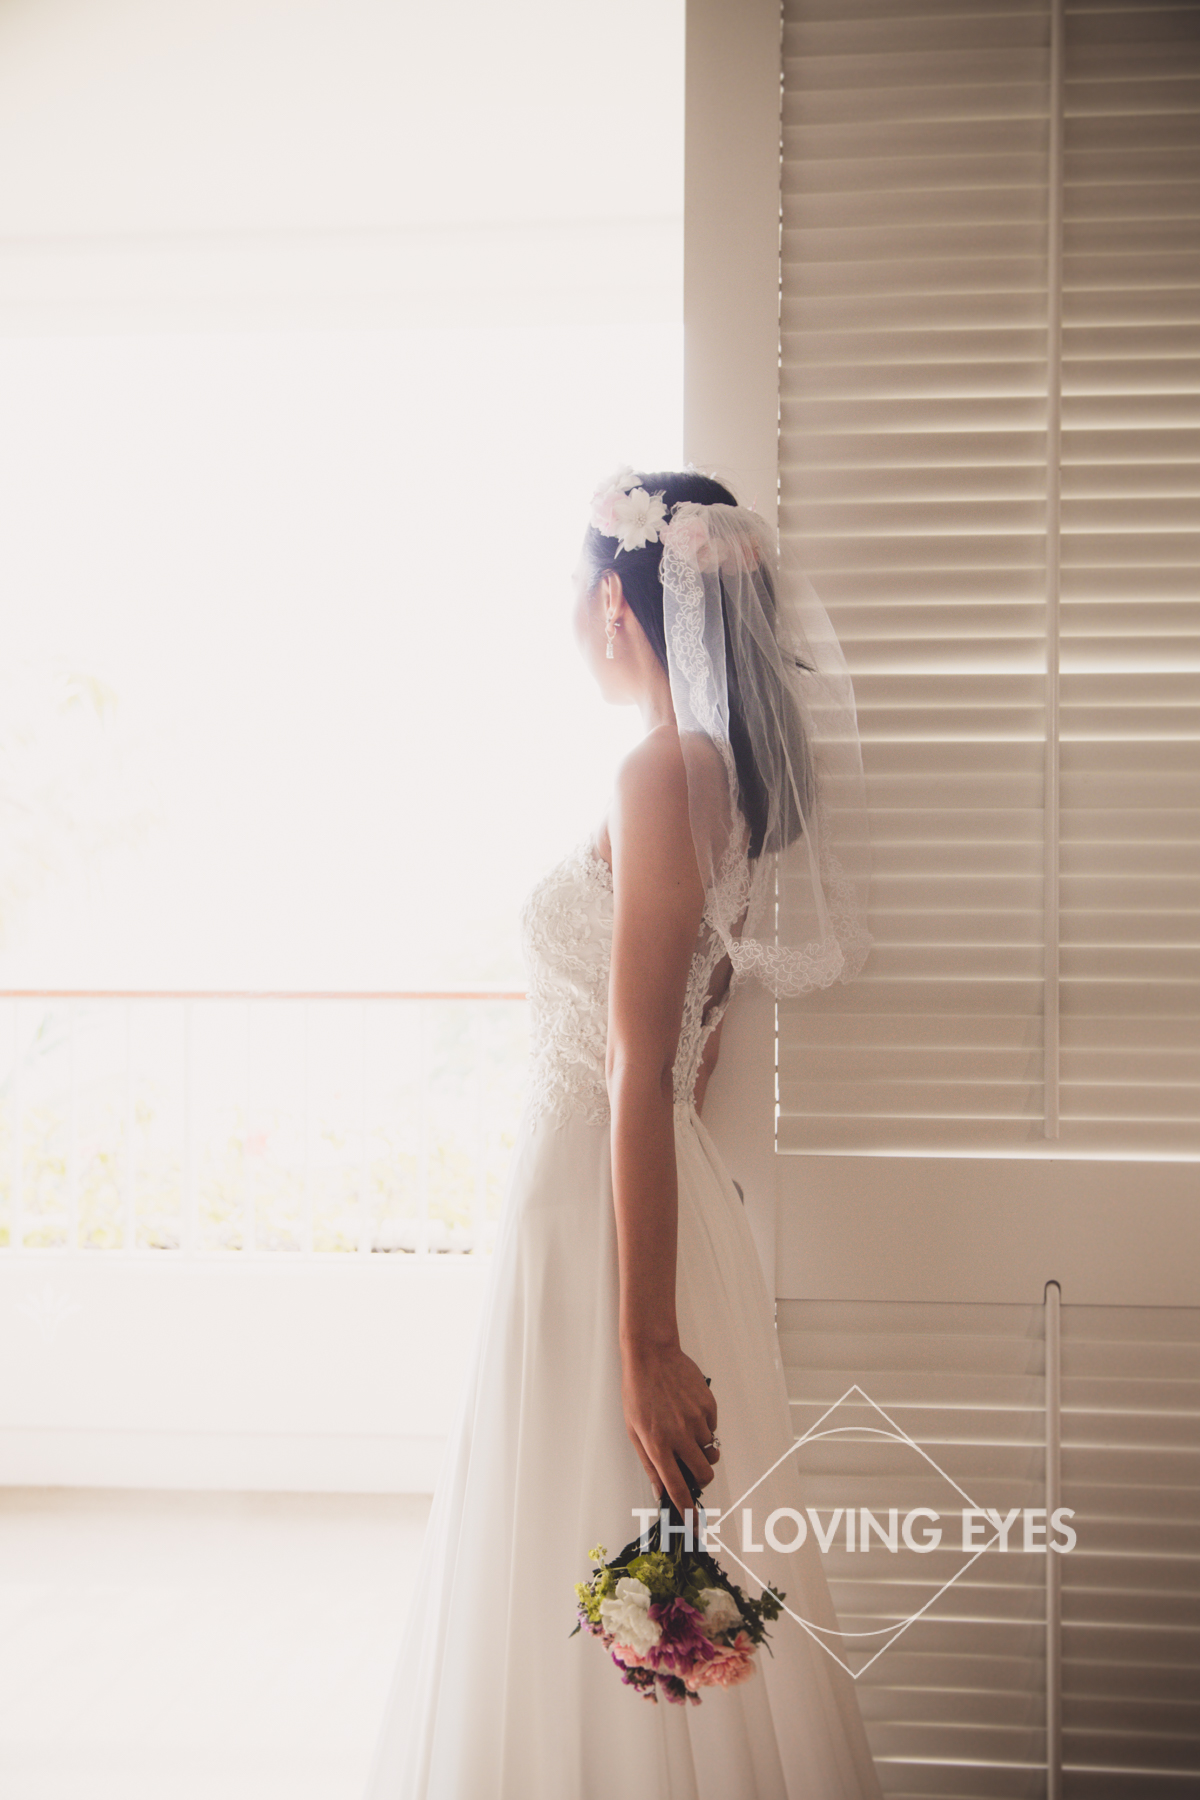 Bride looking out the window at the Four Seasons Resort at Ko Olina after getting dressed